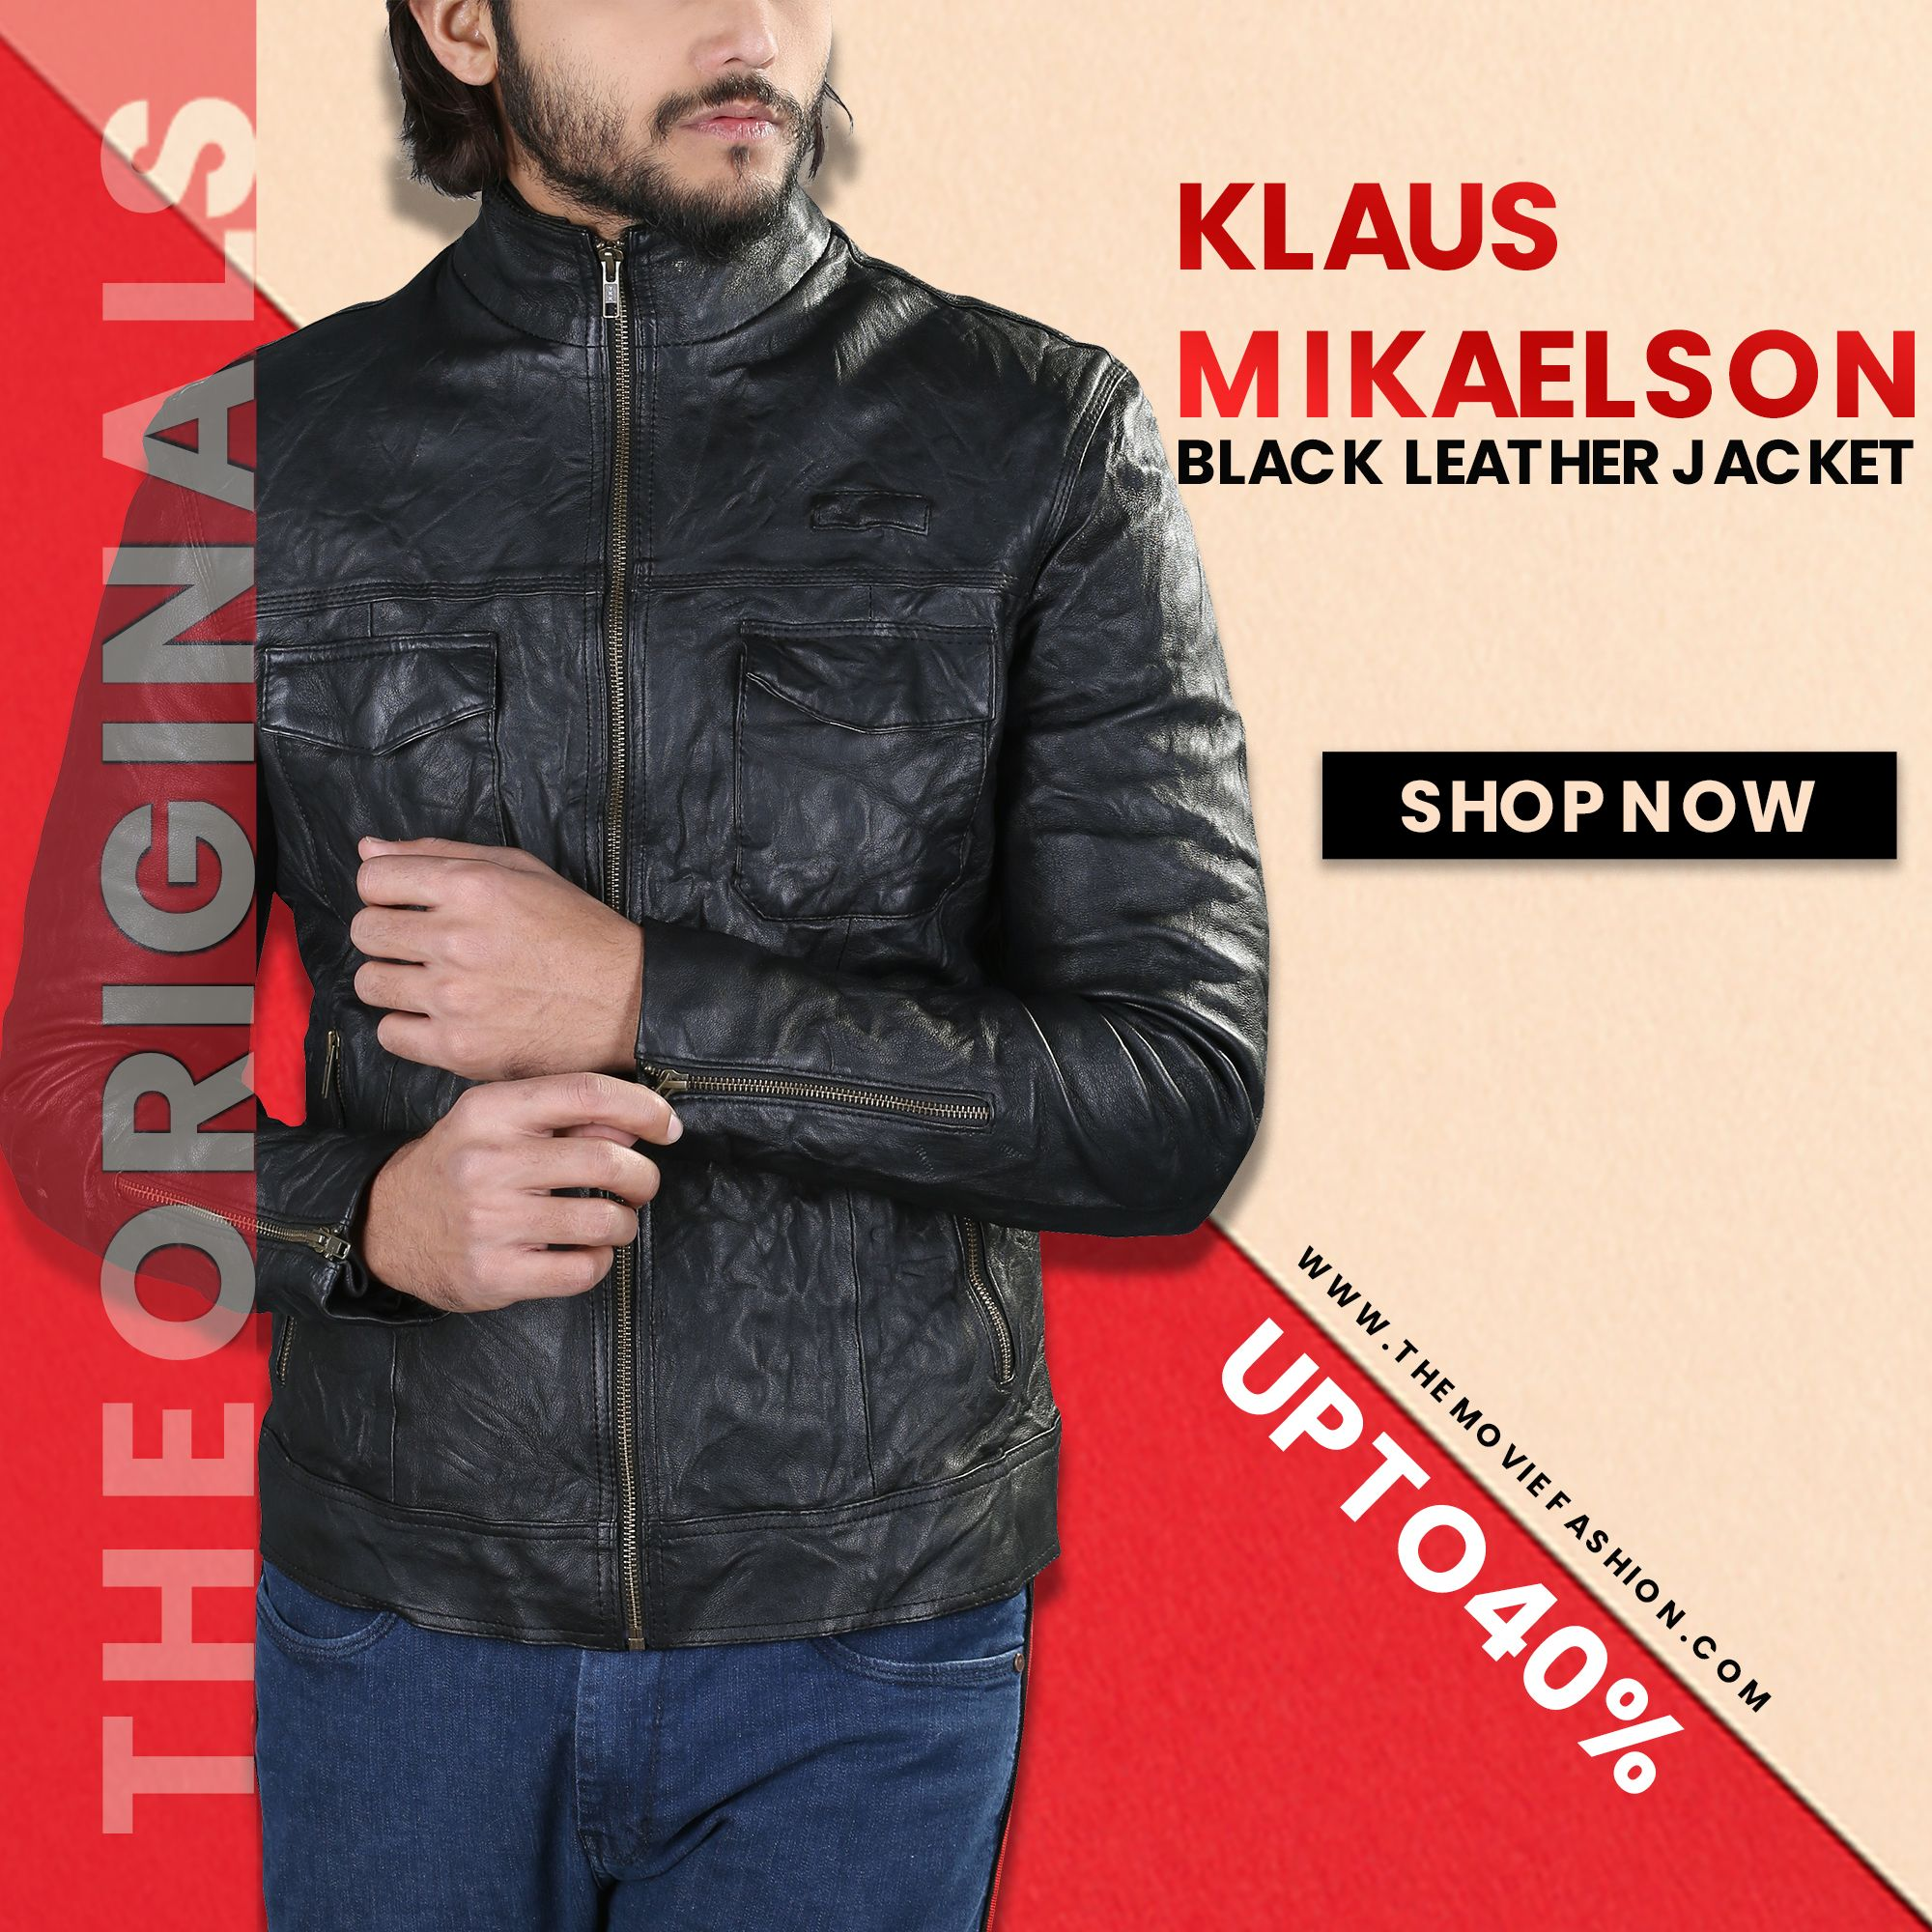 The Originals Klaus Mikaelson Tv Series Black Leather Jacket The Movie Fashion Black Leather Jacket Leather Jacket Jackets [ 2000 x 2000 Pixel ]